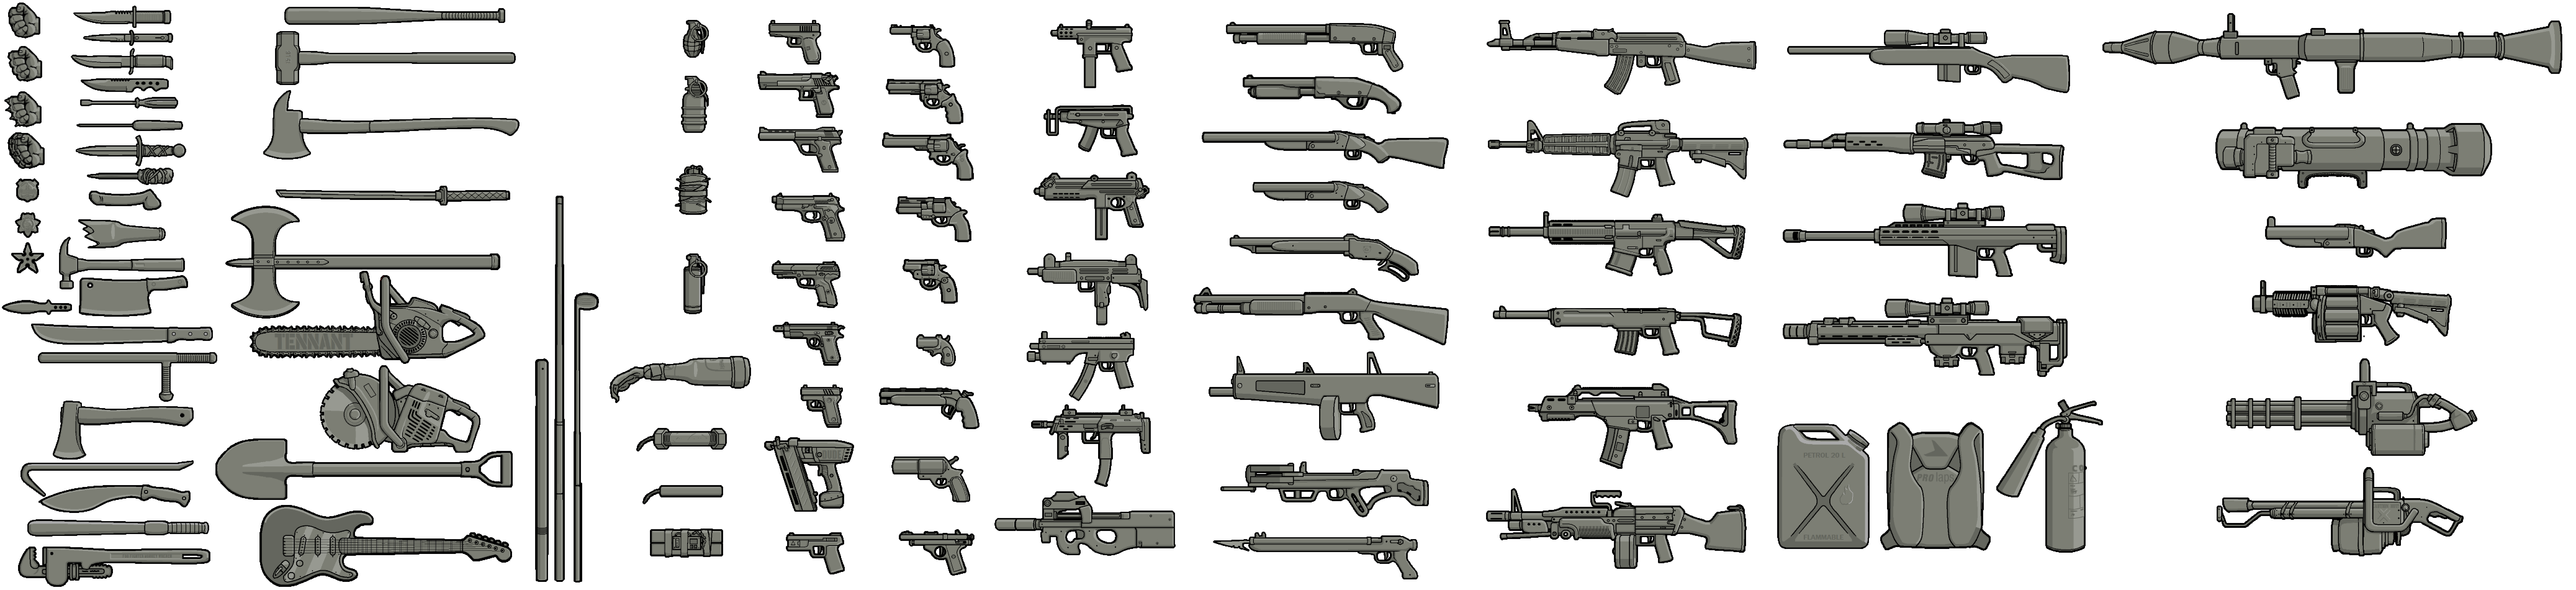 gta_capital_city_all_weapons_by_maniac_d